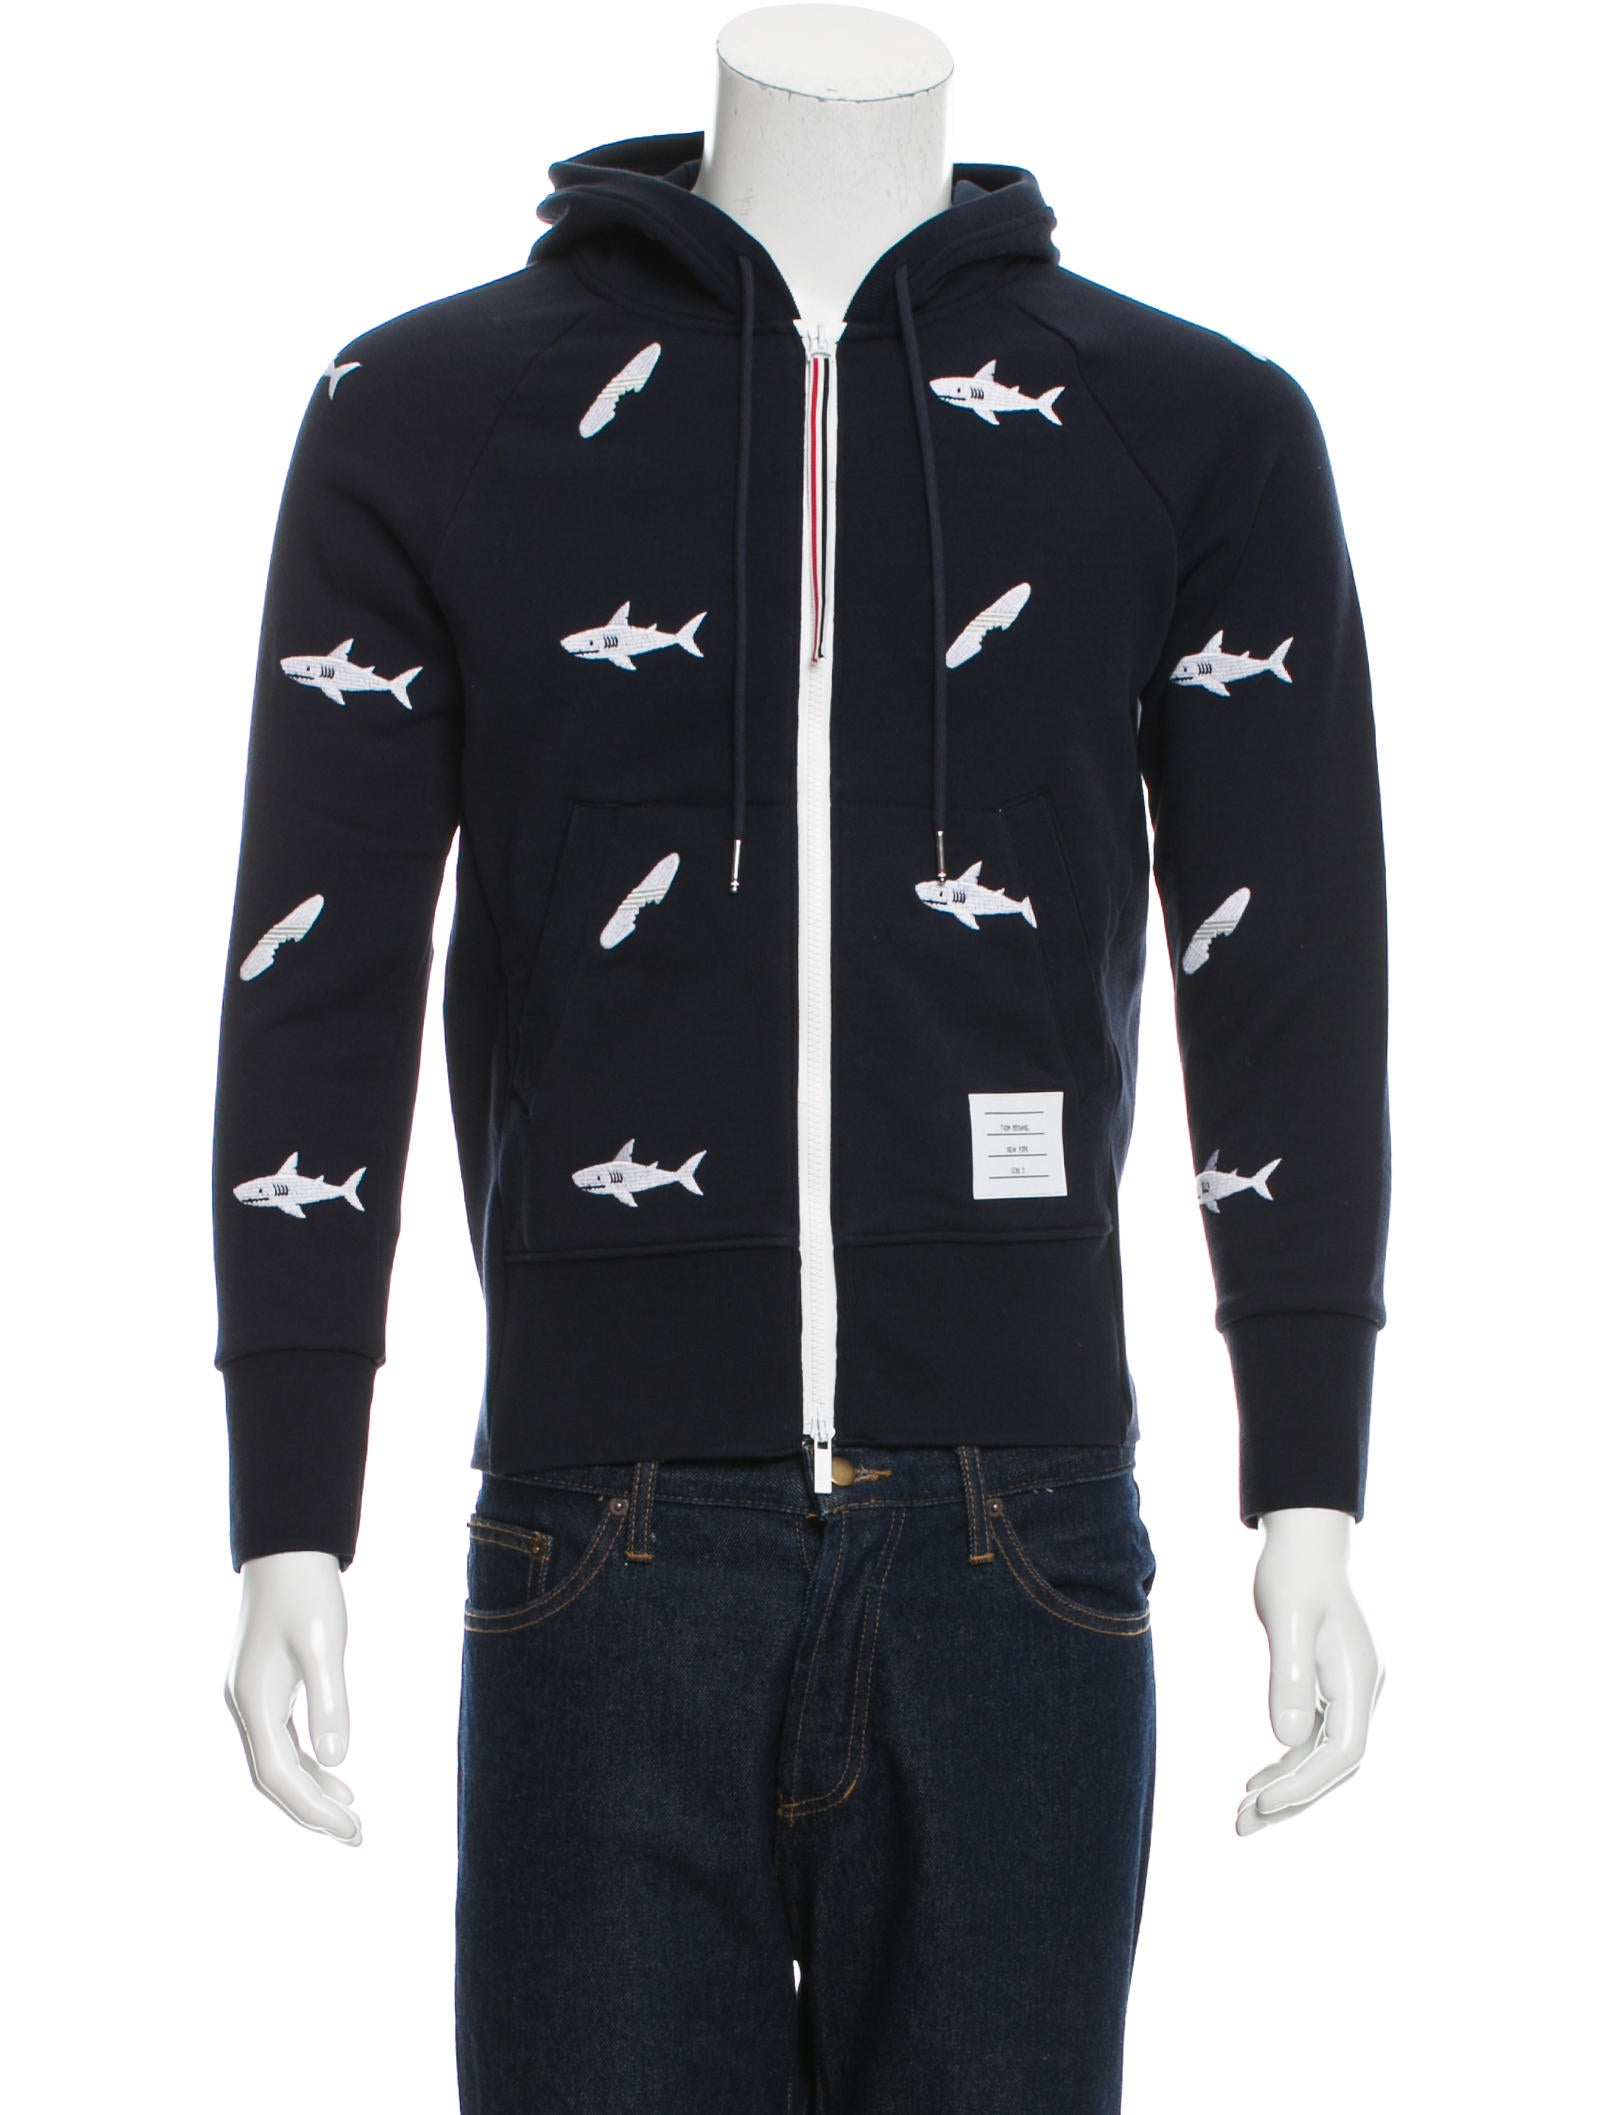 052e7d636b Thom Browne Shark & Surfboard Zip-Up Hoodie - Clothing - THO21837 ...